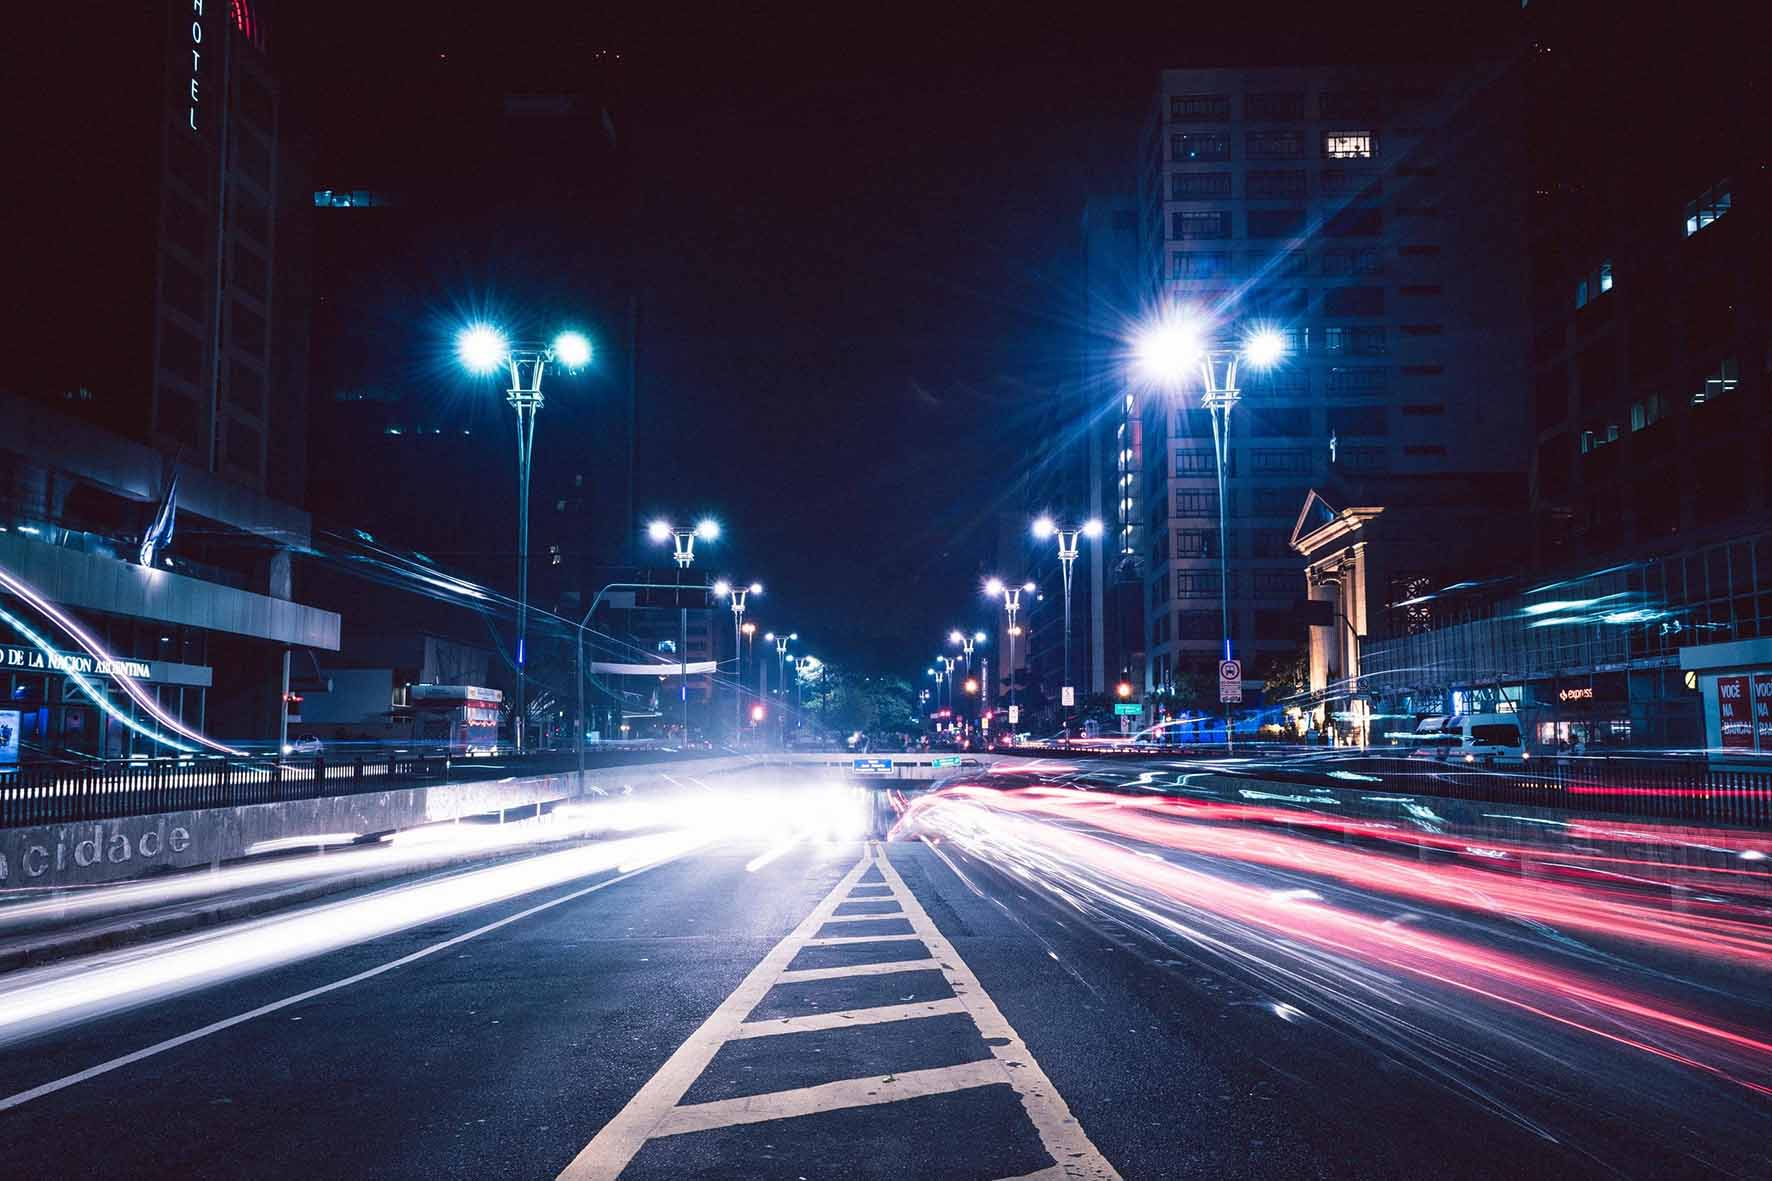 time lapse image of traffic lights streaming through a city at night with streetlights brightly shining